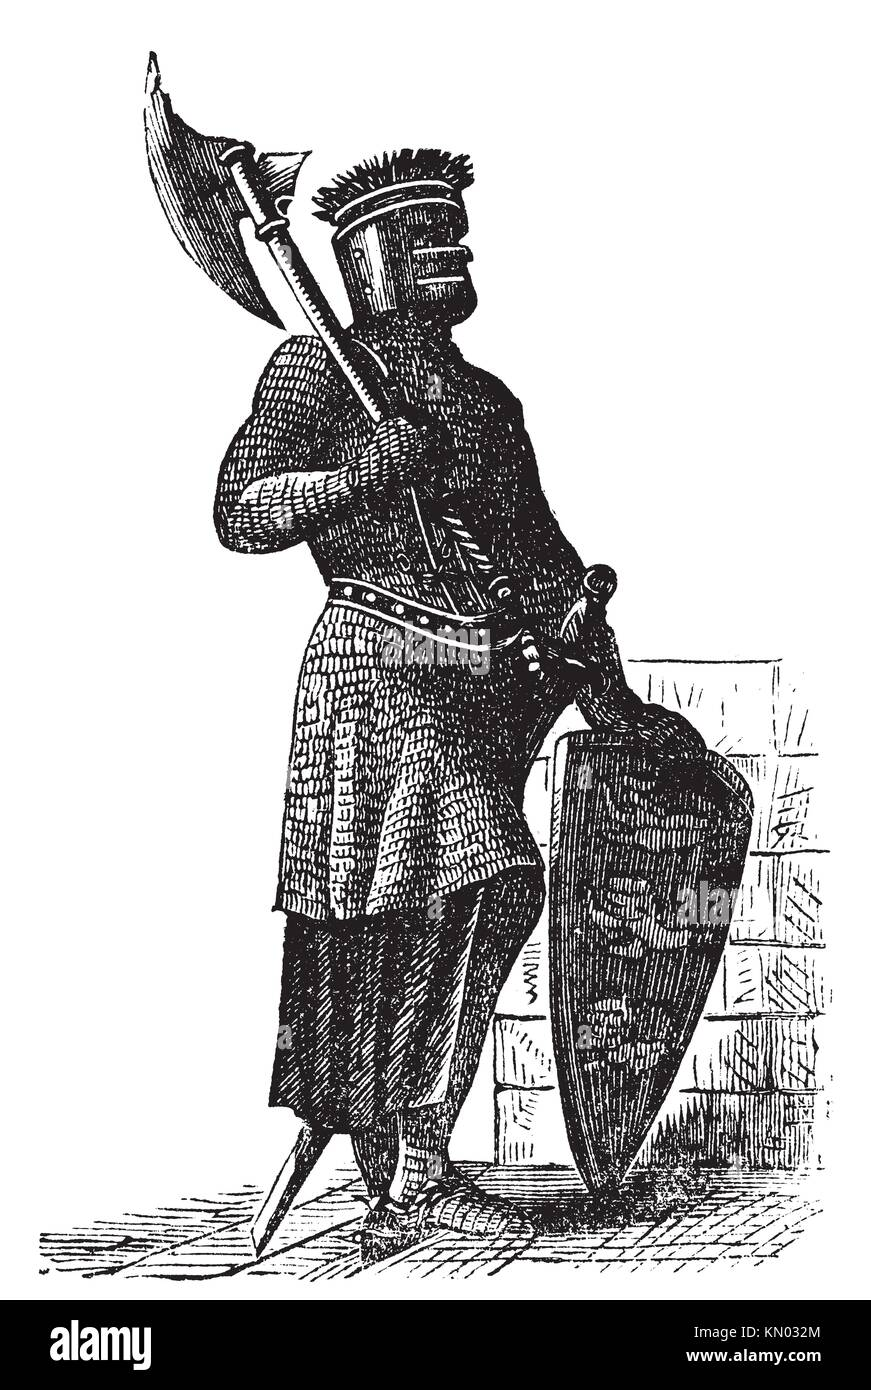 Armor and weapons during the first Crusades era, old engraving  Vector, engraved illustration of Crusade knight, - Stock Image